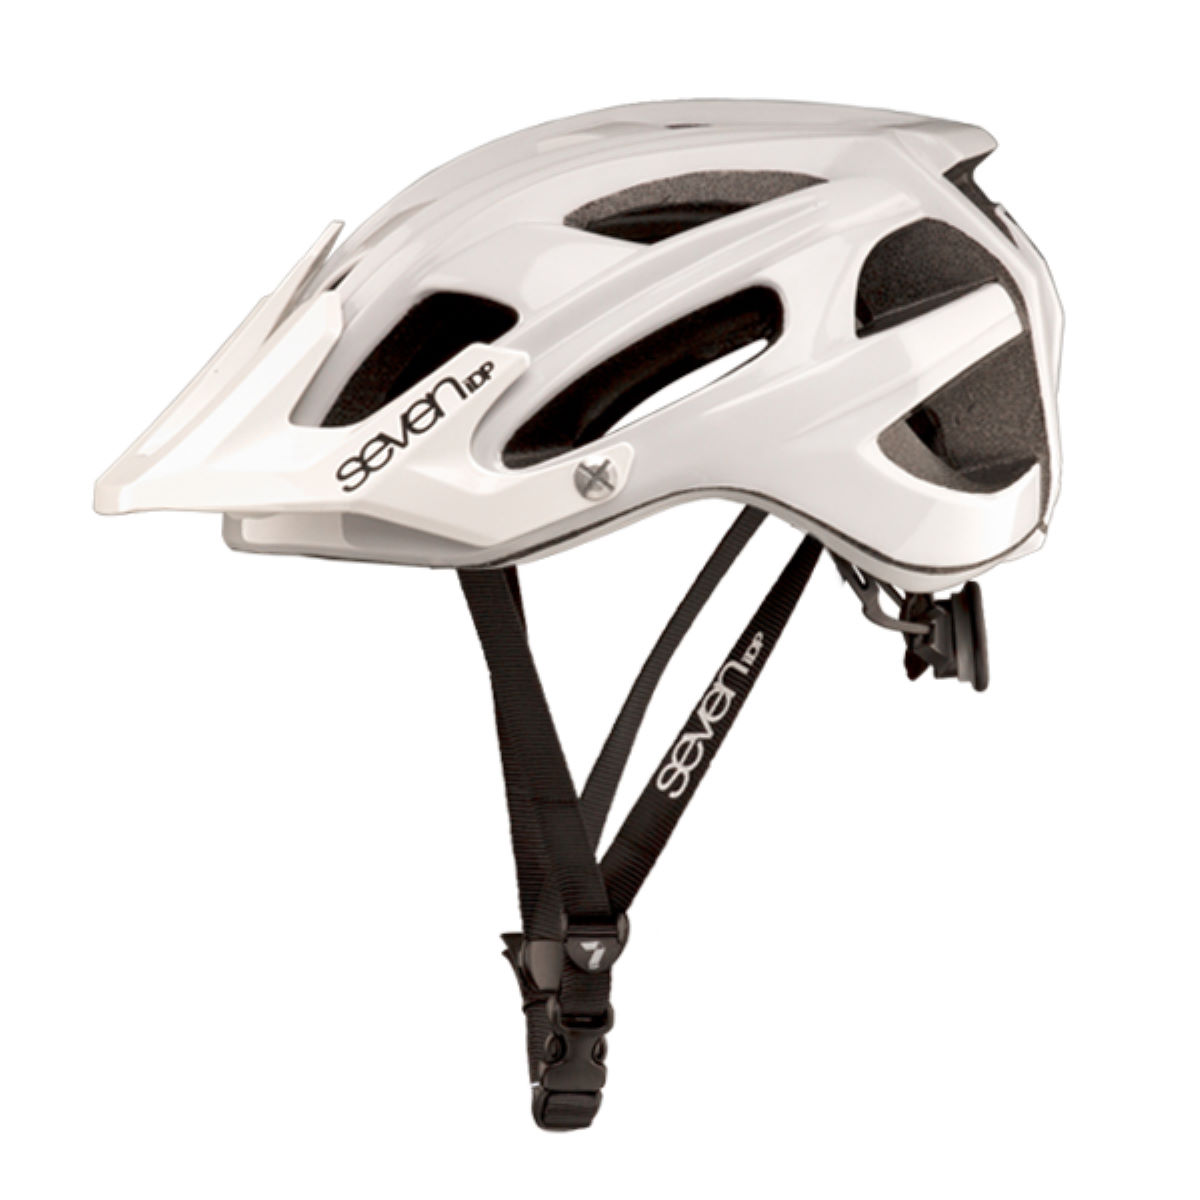 Casque 7 iDP M4 - L/XL White - Black Casques VTT